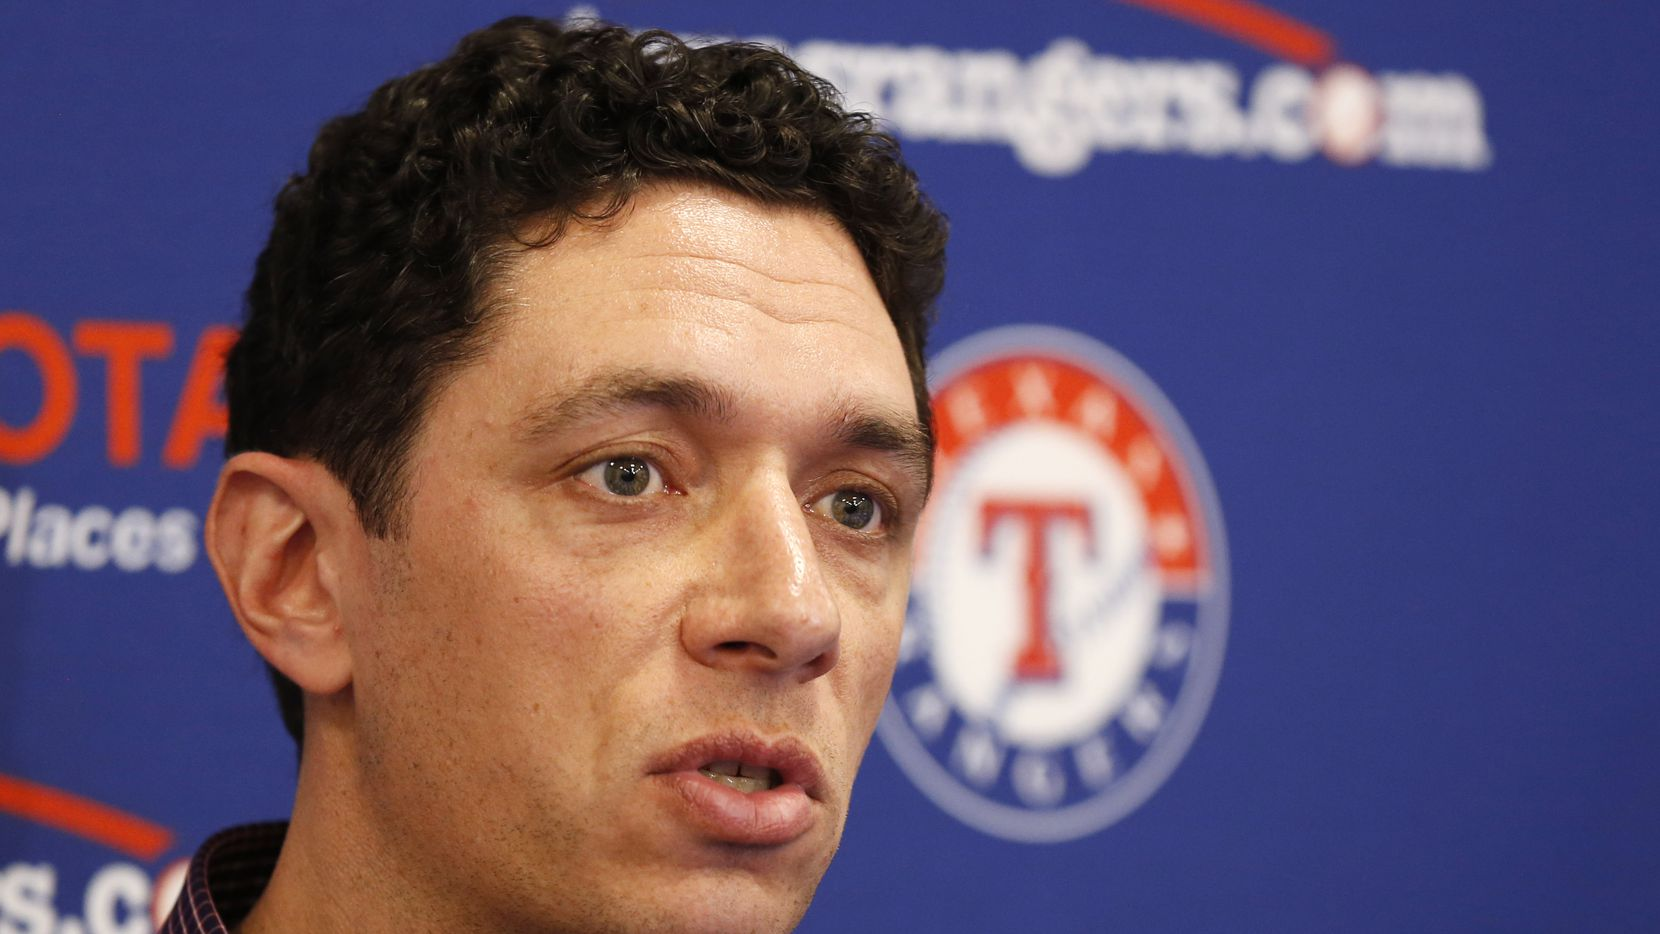 Texas Rangers general manager Jon Daniels answers questions during a press conference at Mercy Street Sports Complex in Dallas on Wednesday, January 15, 2020.